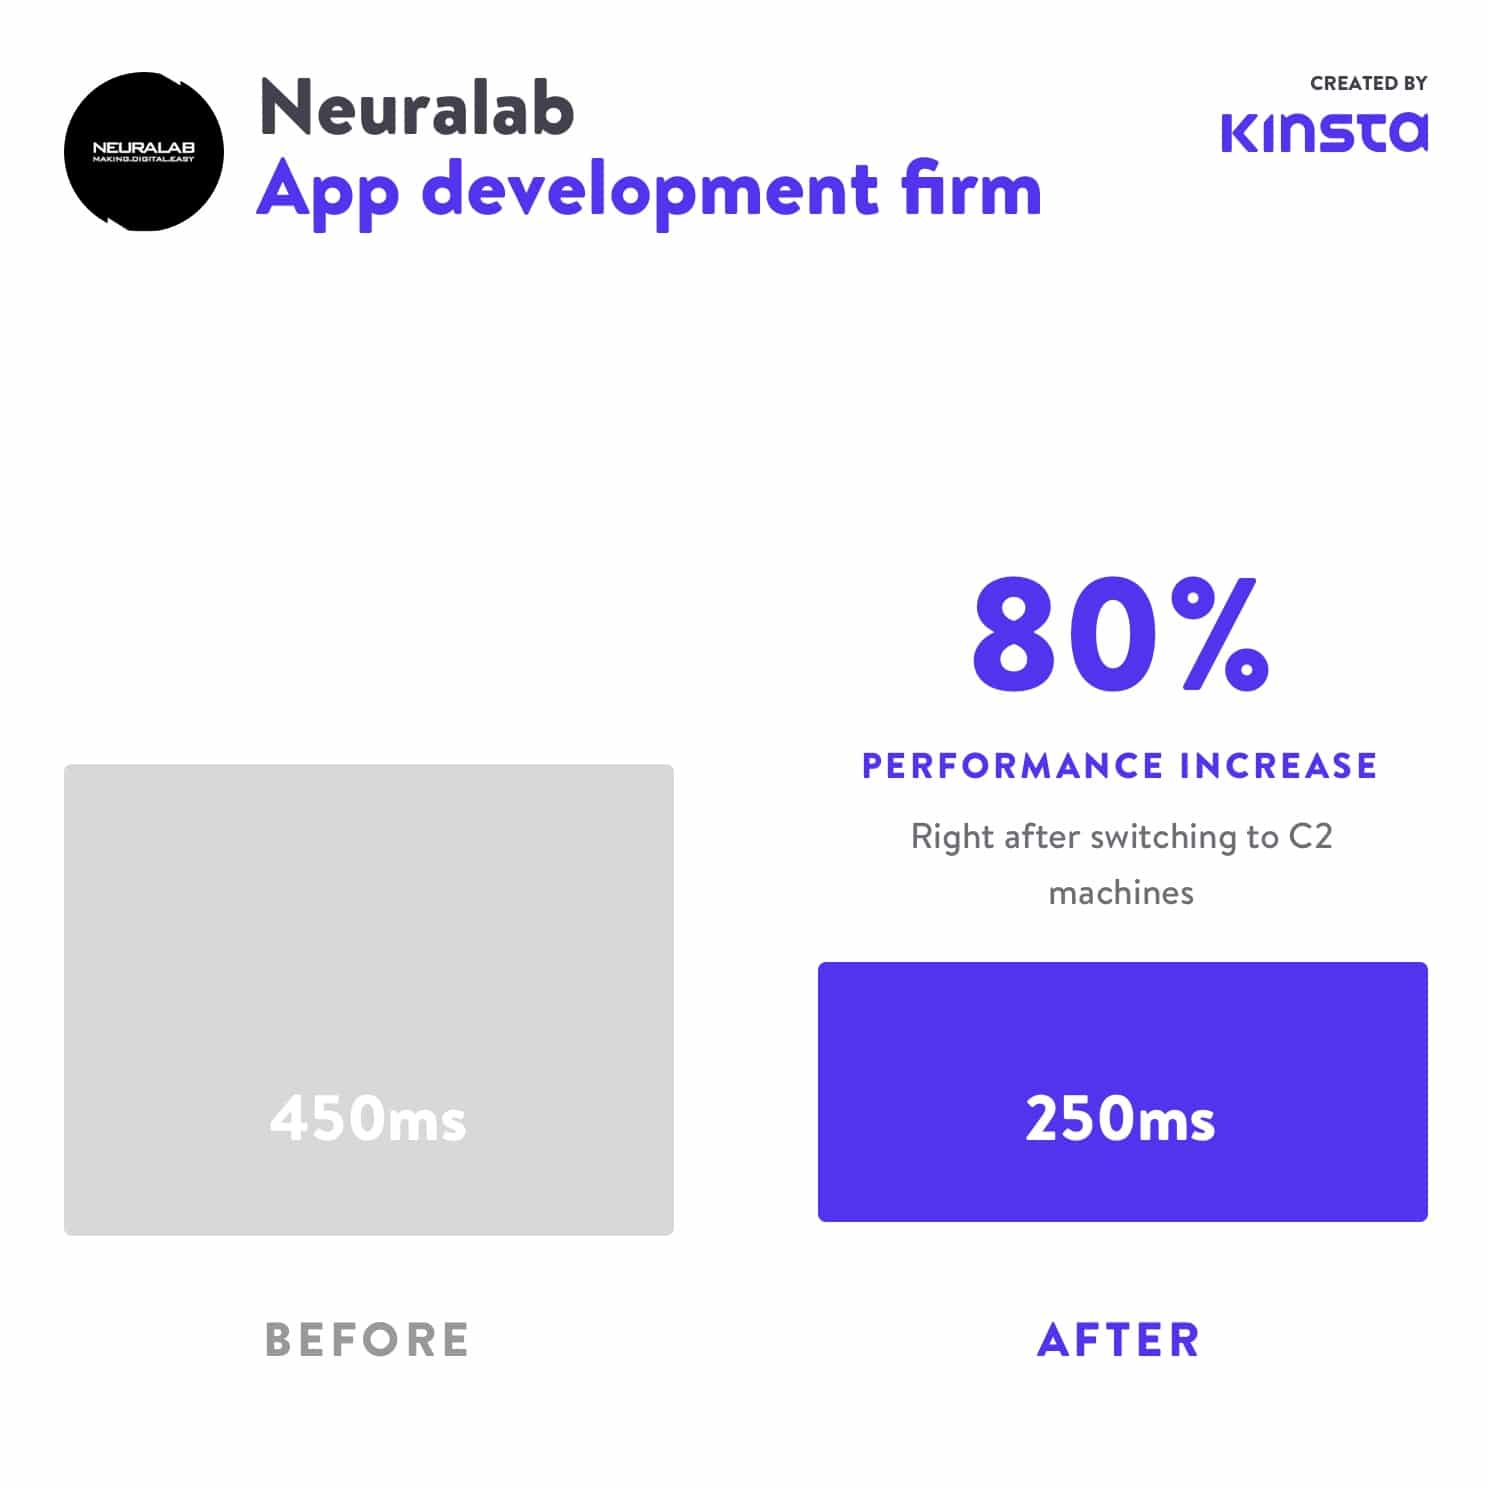 Neuralab saw a 80% performance increase after moving to C2.